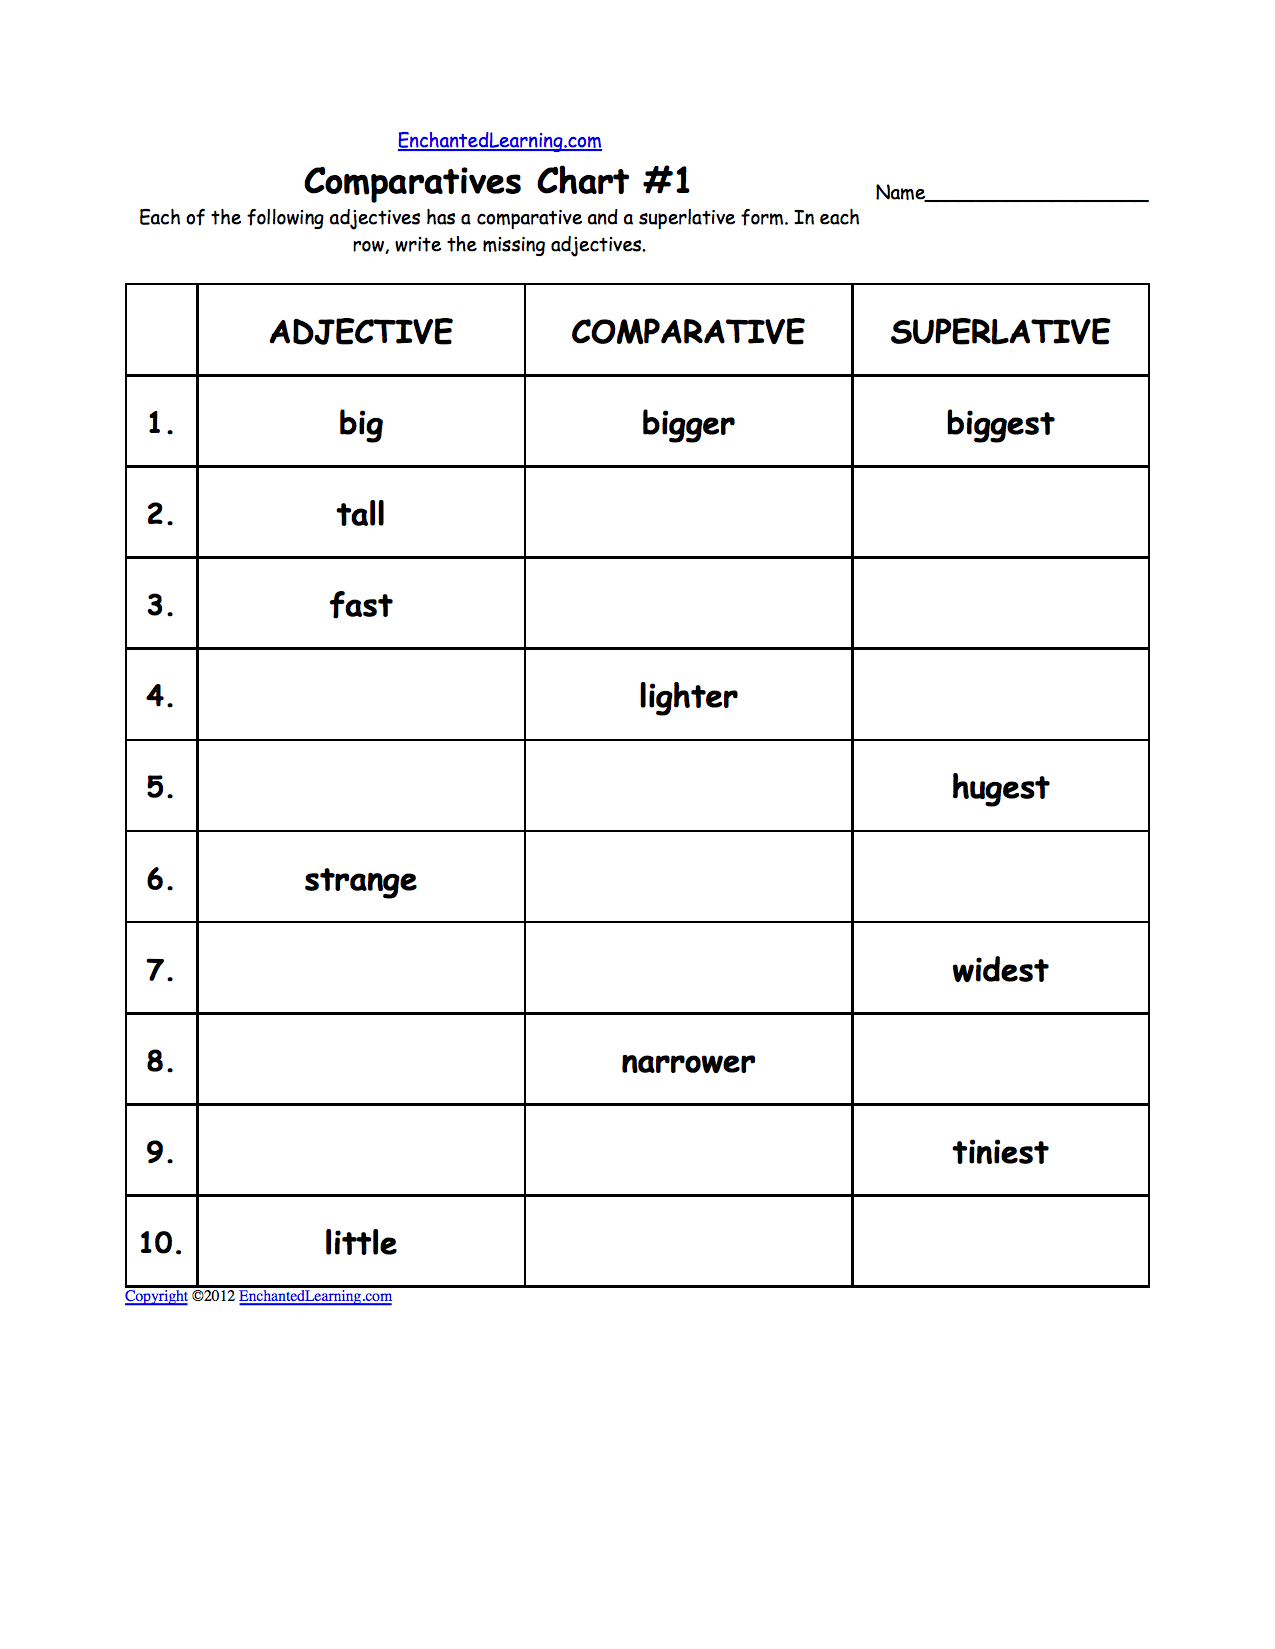 worksheet Order Of Adjectives Worksheet adjective and a list of adjectives enchantedlearning com